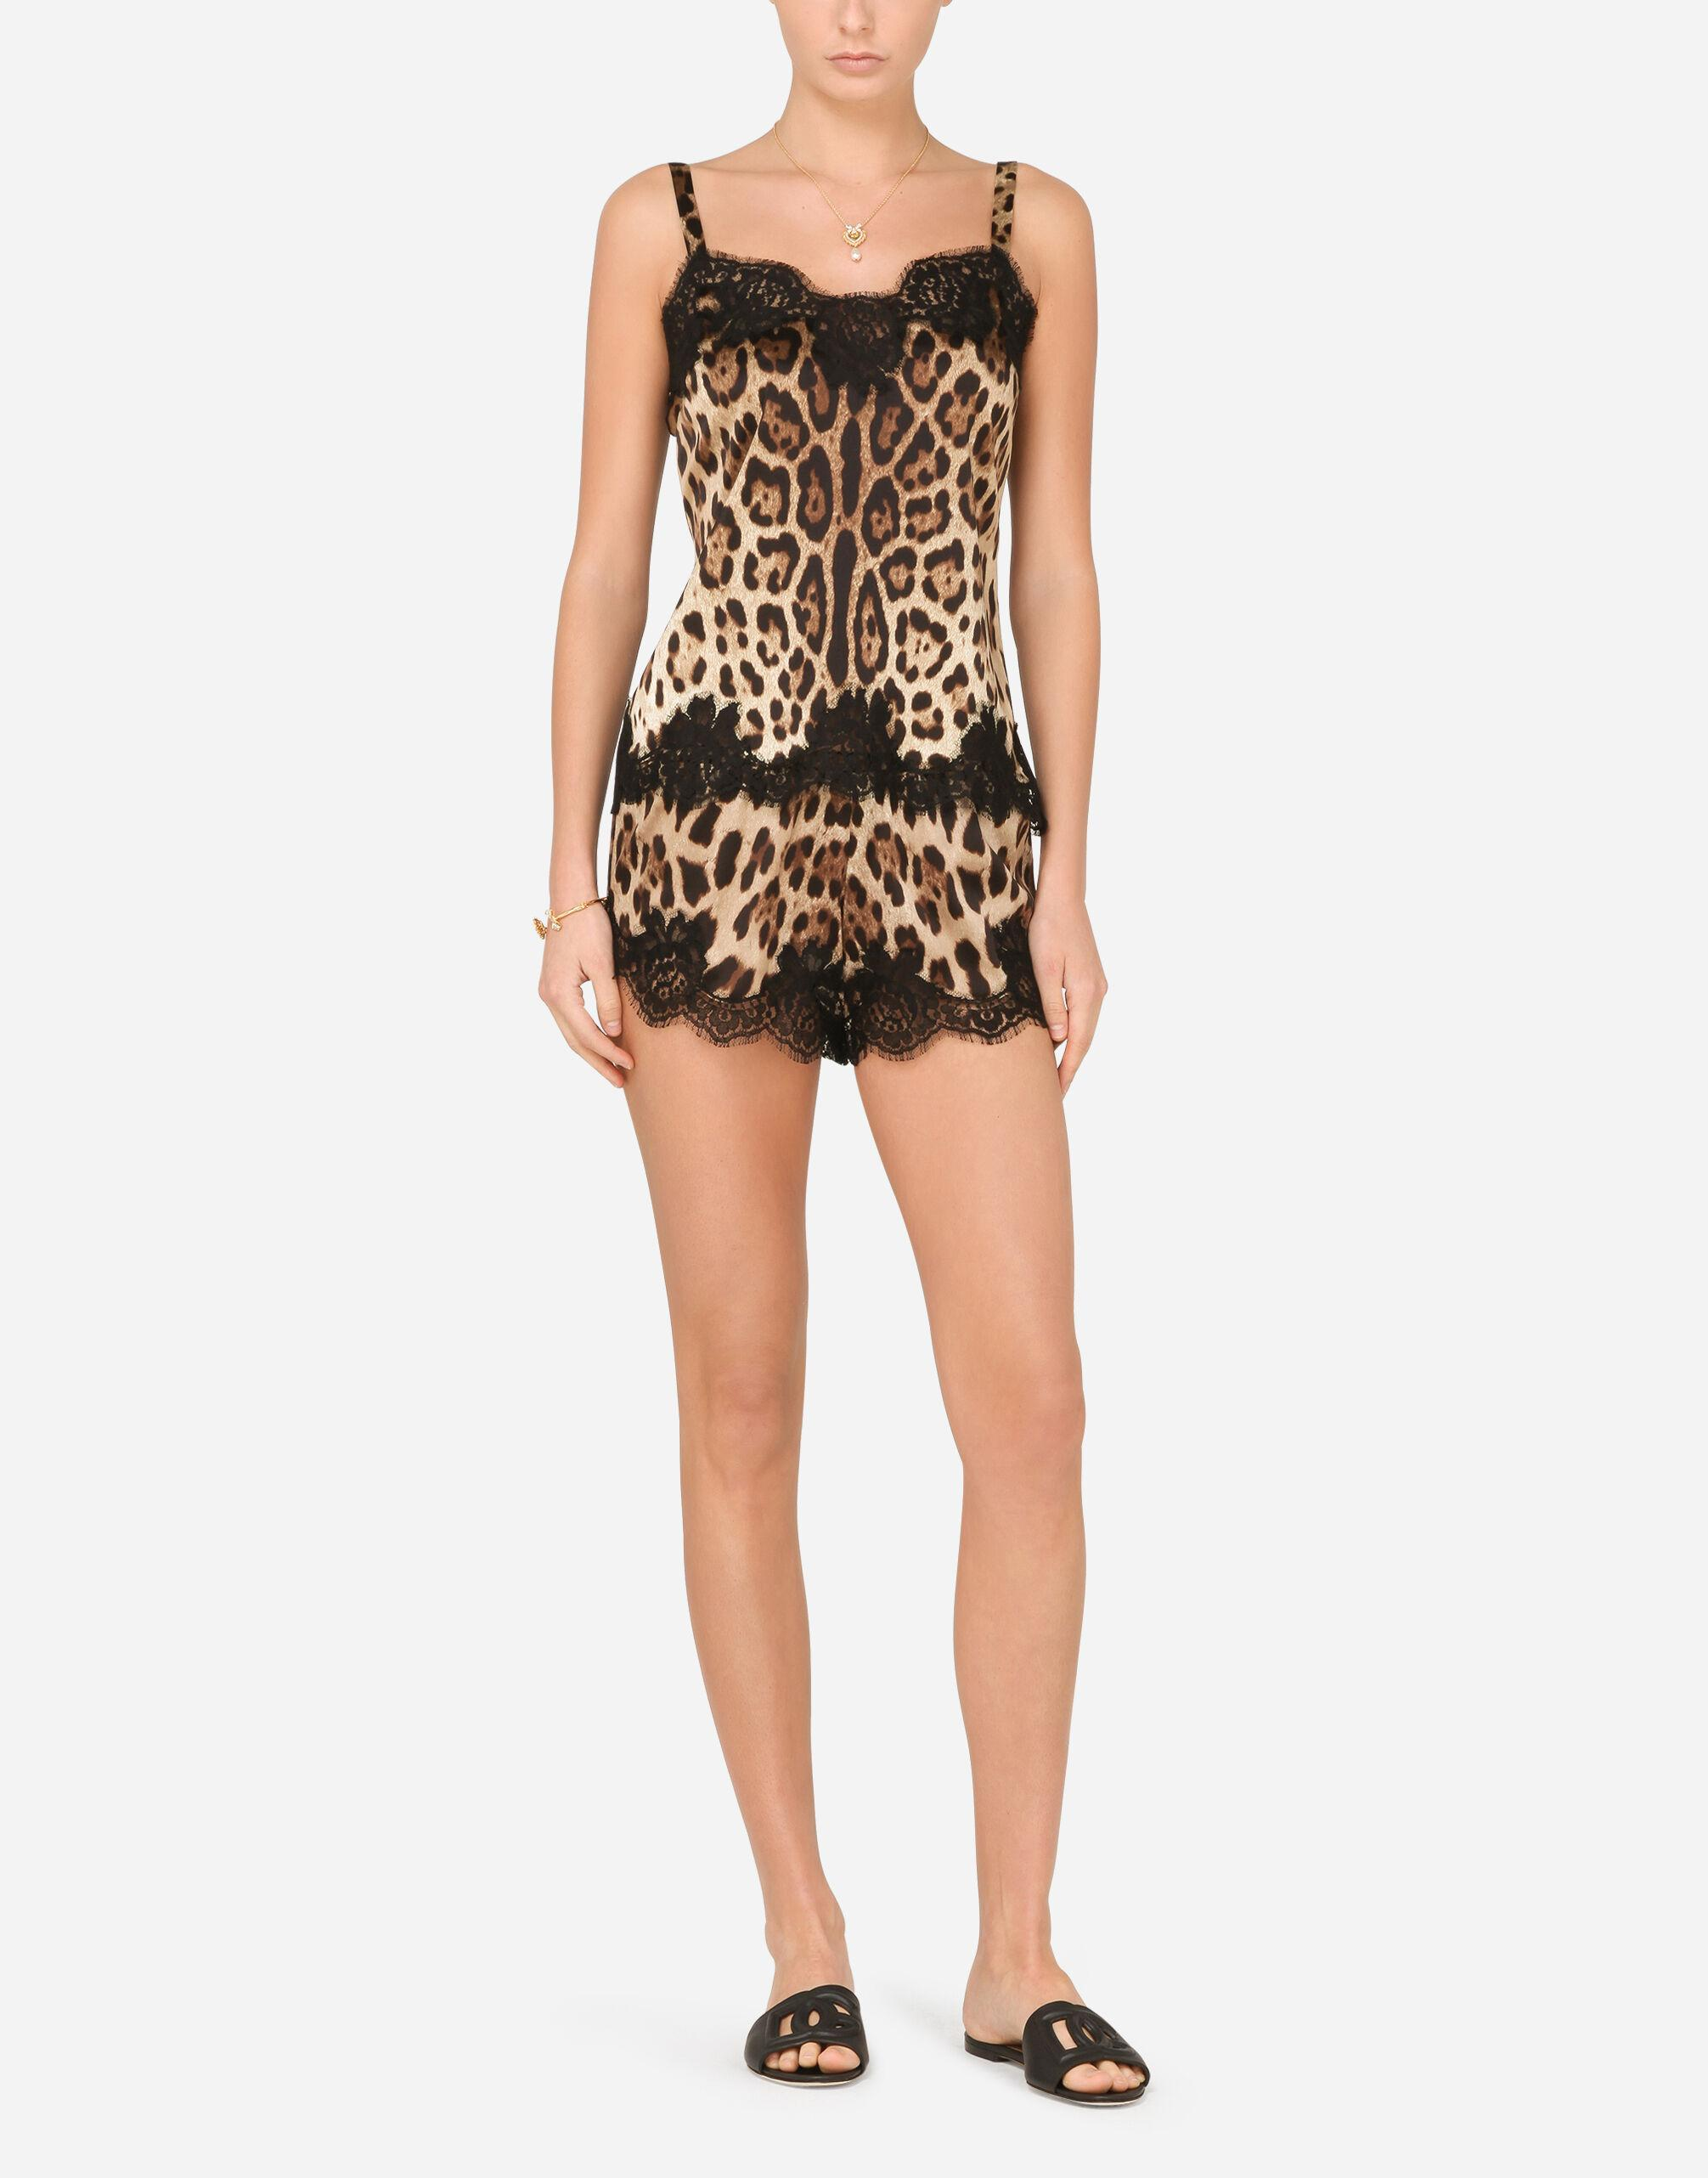 Leopard-print satin lingerie-style top with lace detailing